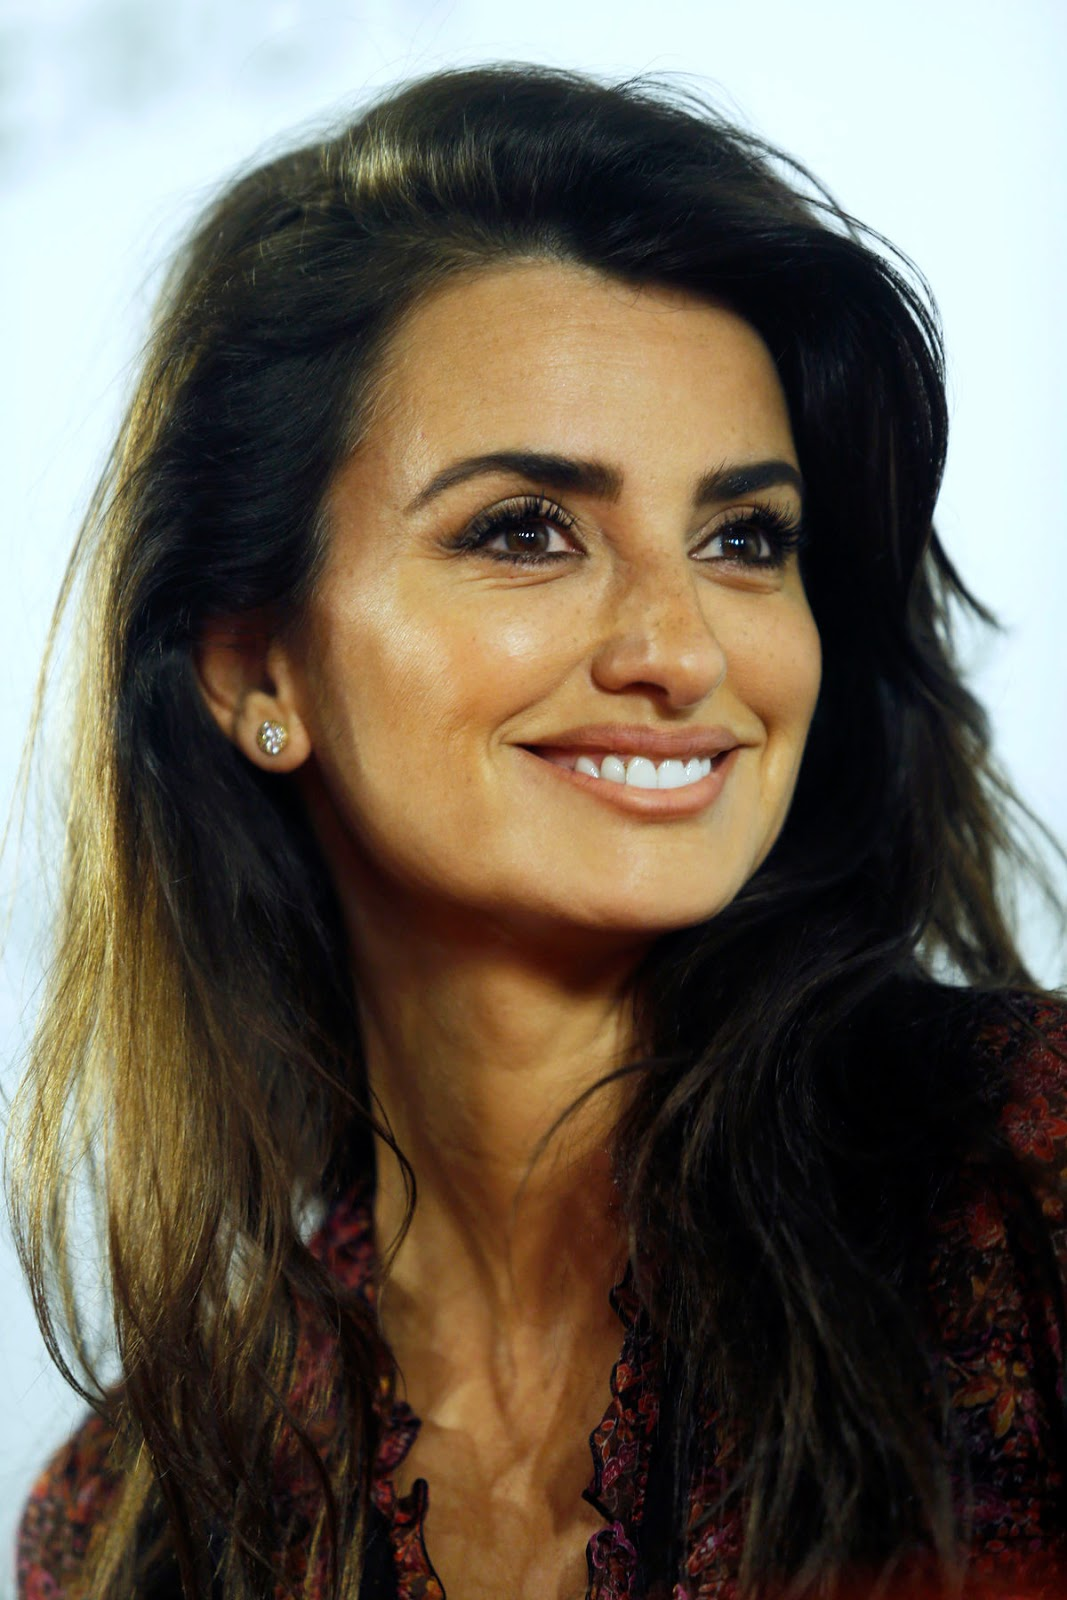 Zoolander No 2 actress Hot & Sexy Penelope Cruz at Soy Uno Entre Cien Mil Photocall at Academia De Cine in Madrid